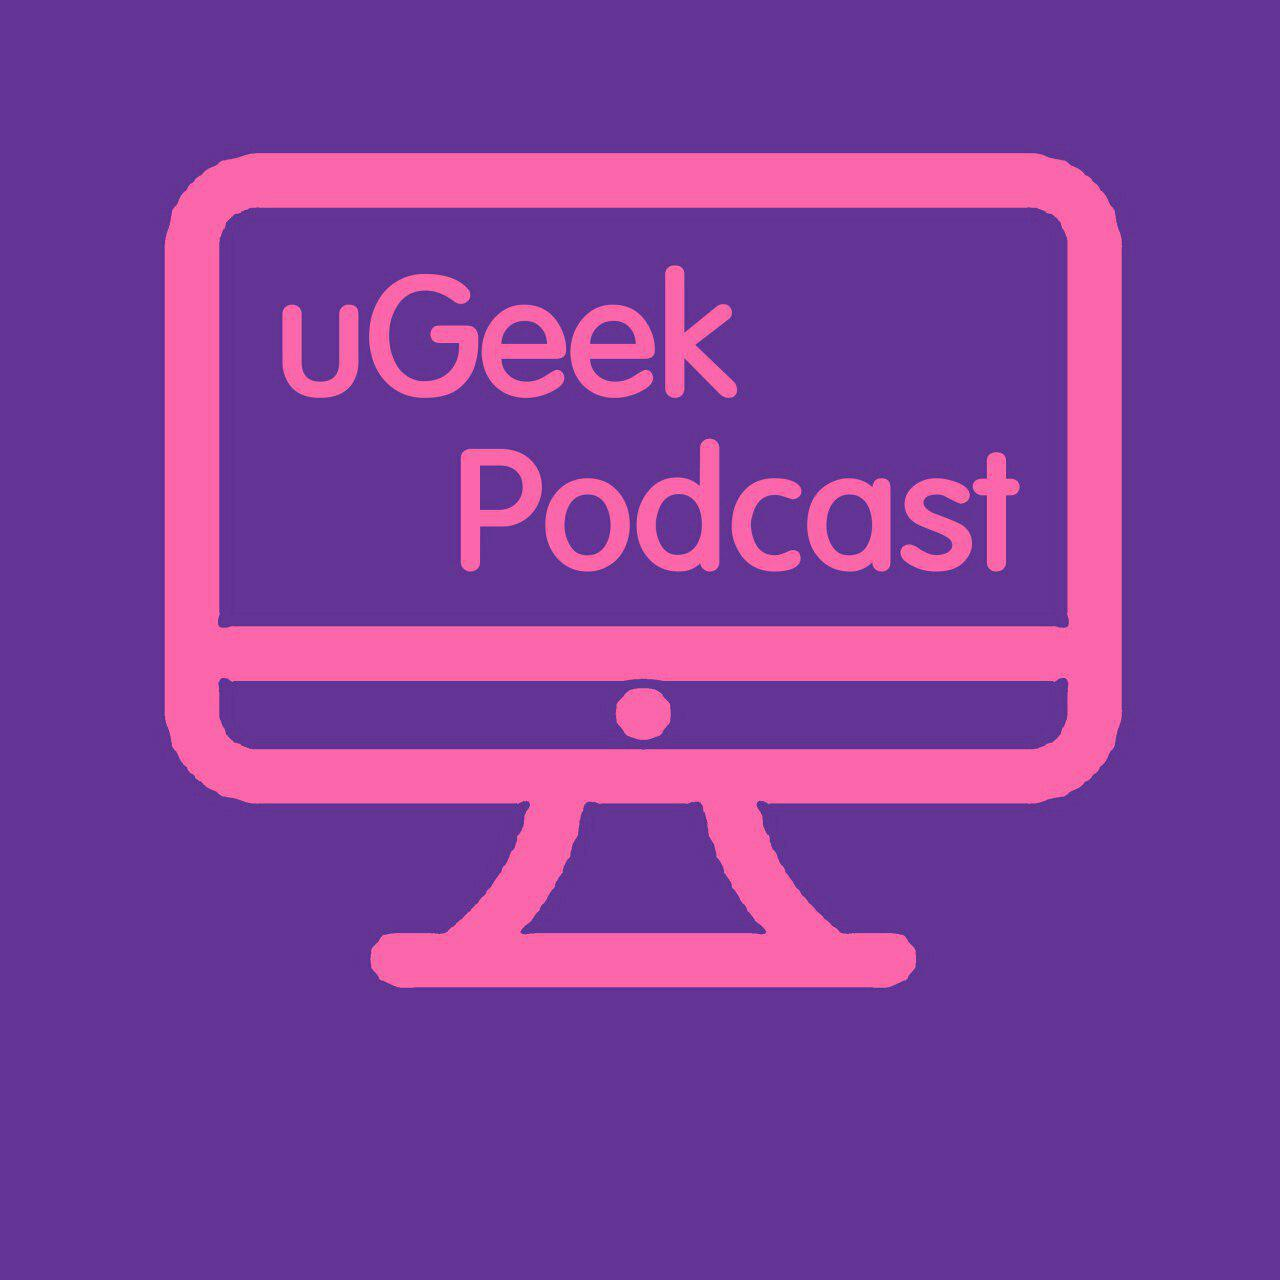 uGeek Podcast